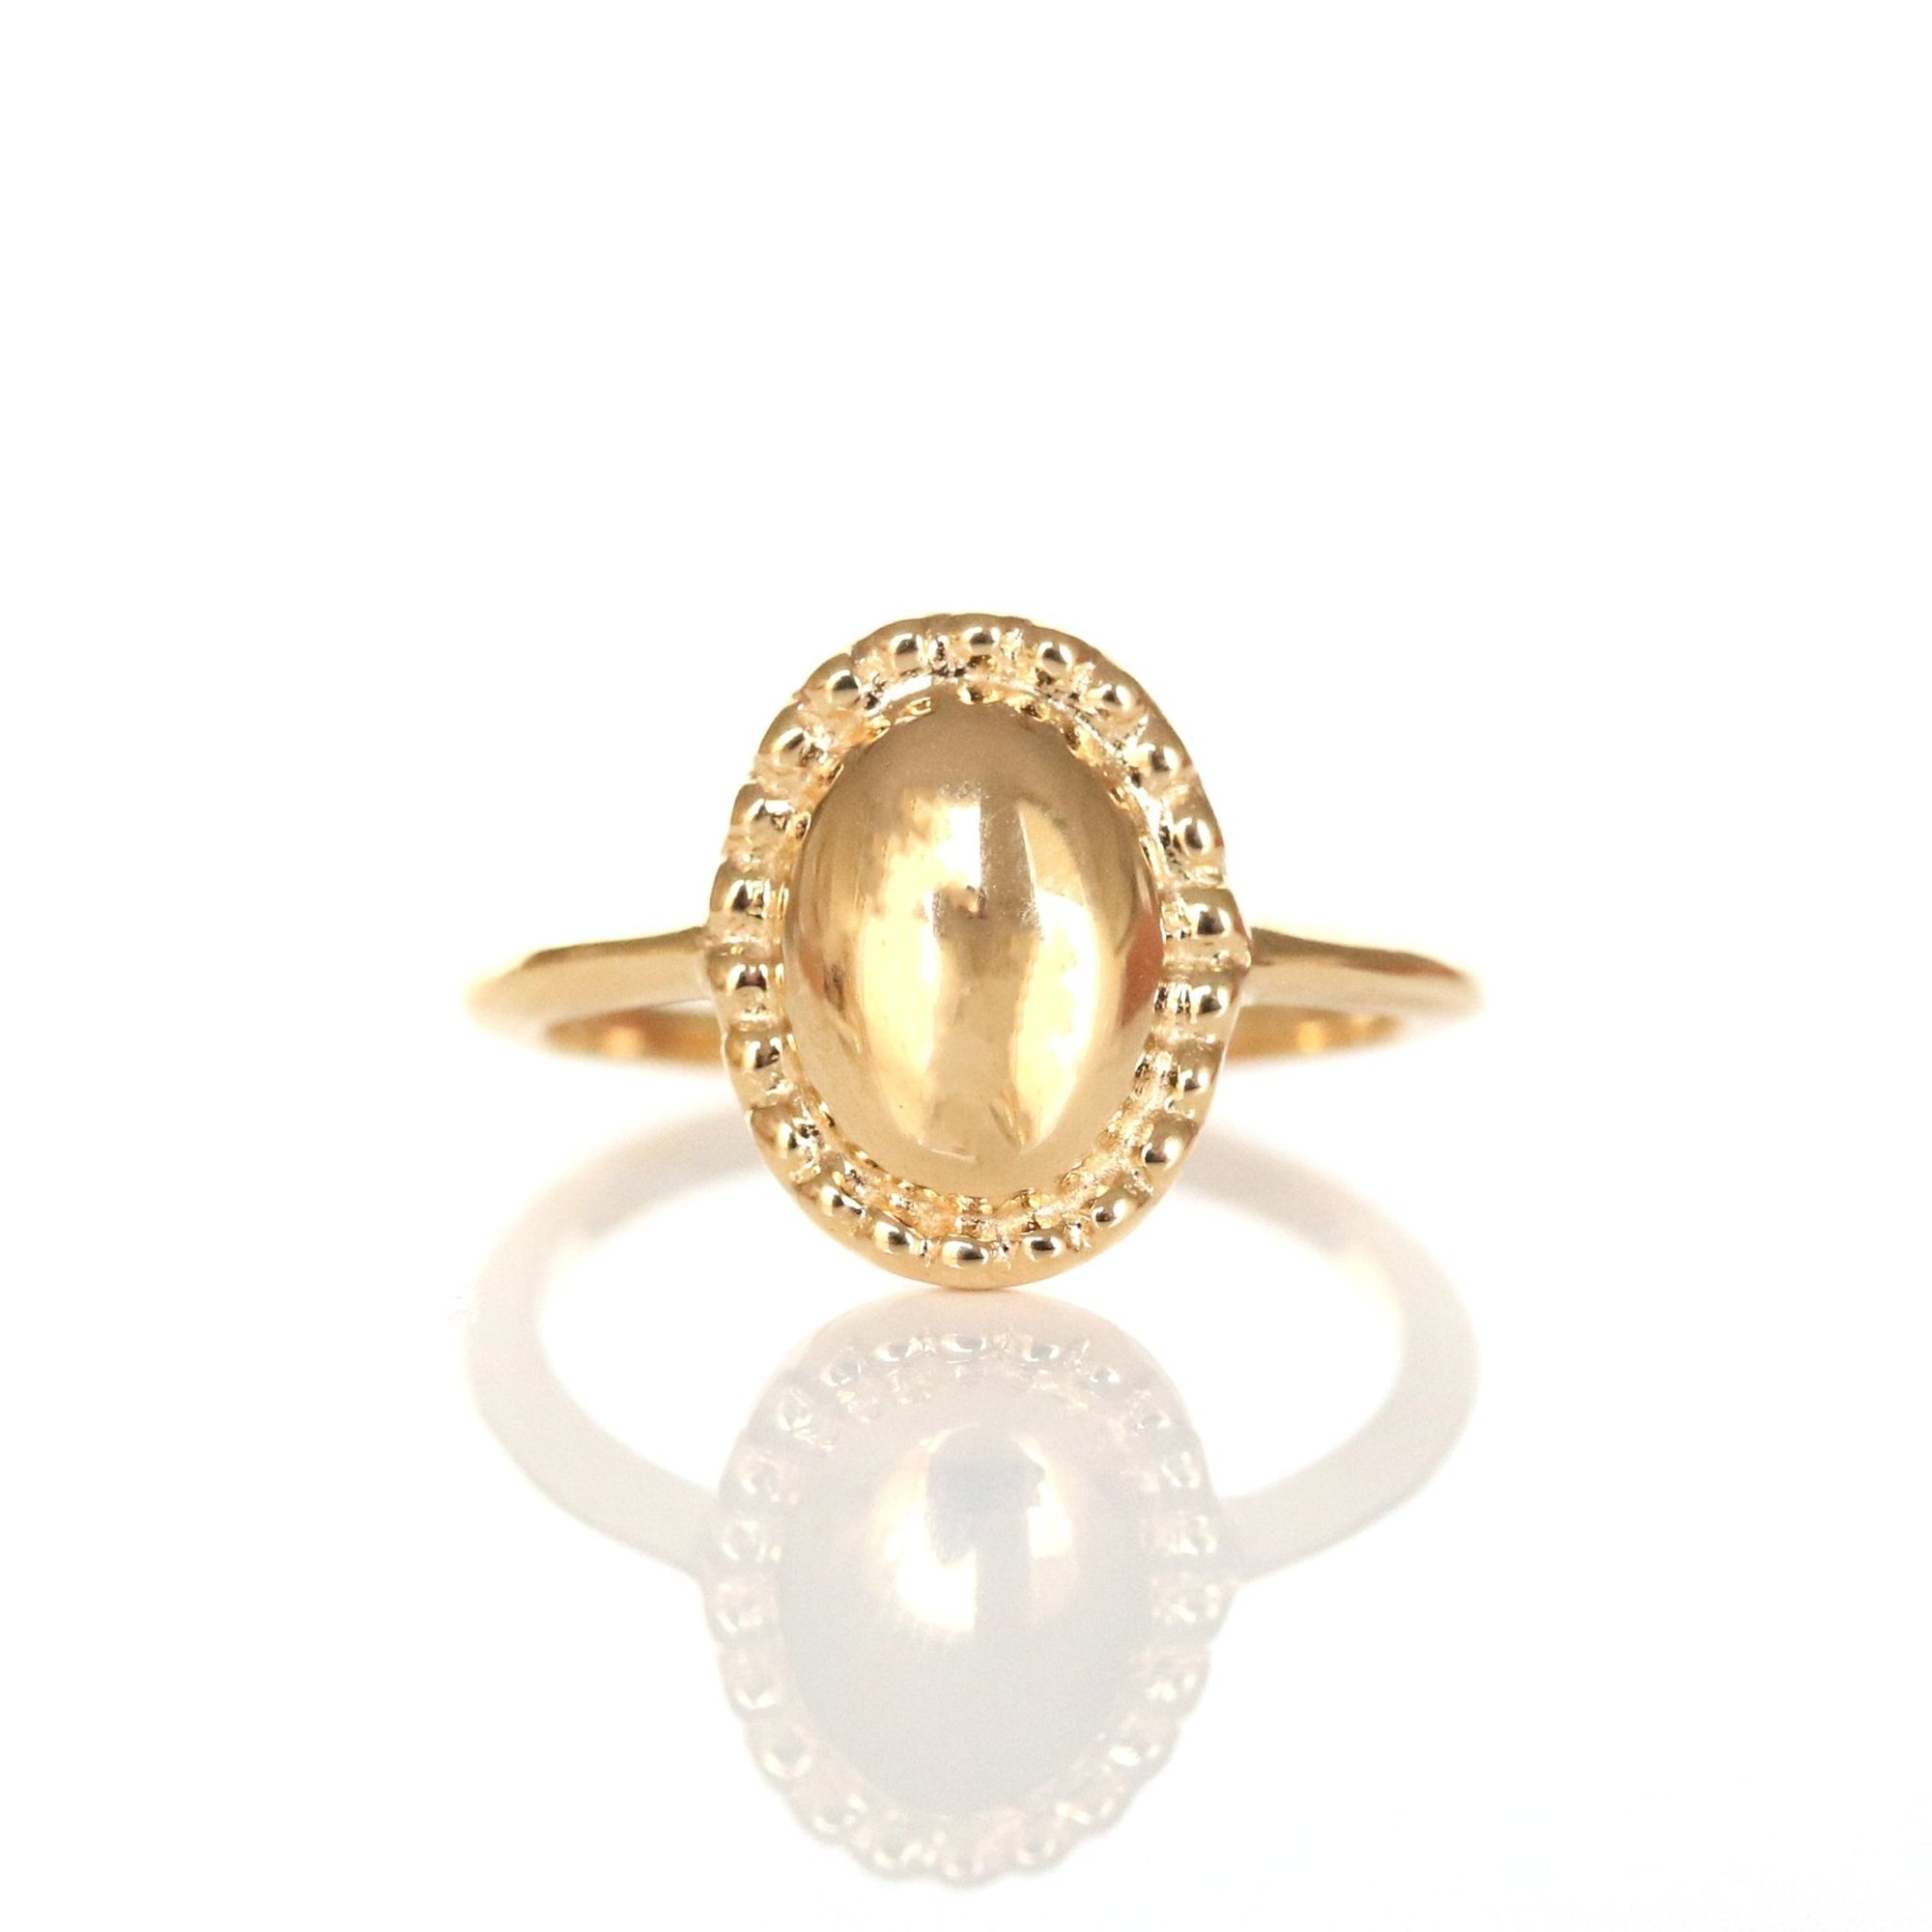 MINI BELIEVE SOLEIL OVAL RING - GOLD - SO PRETTY CARA COTTER